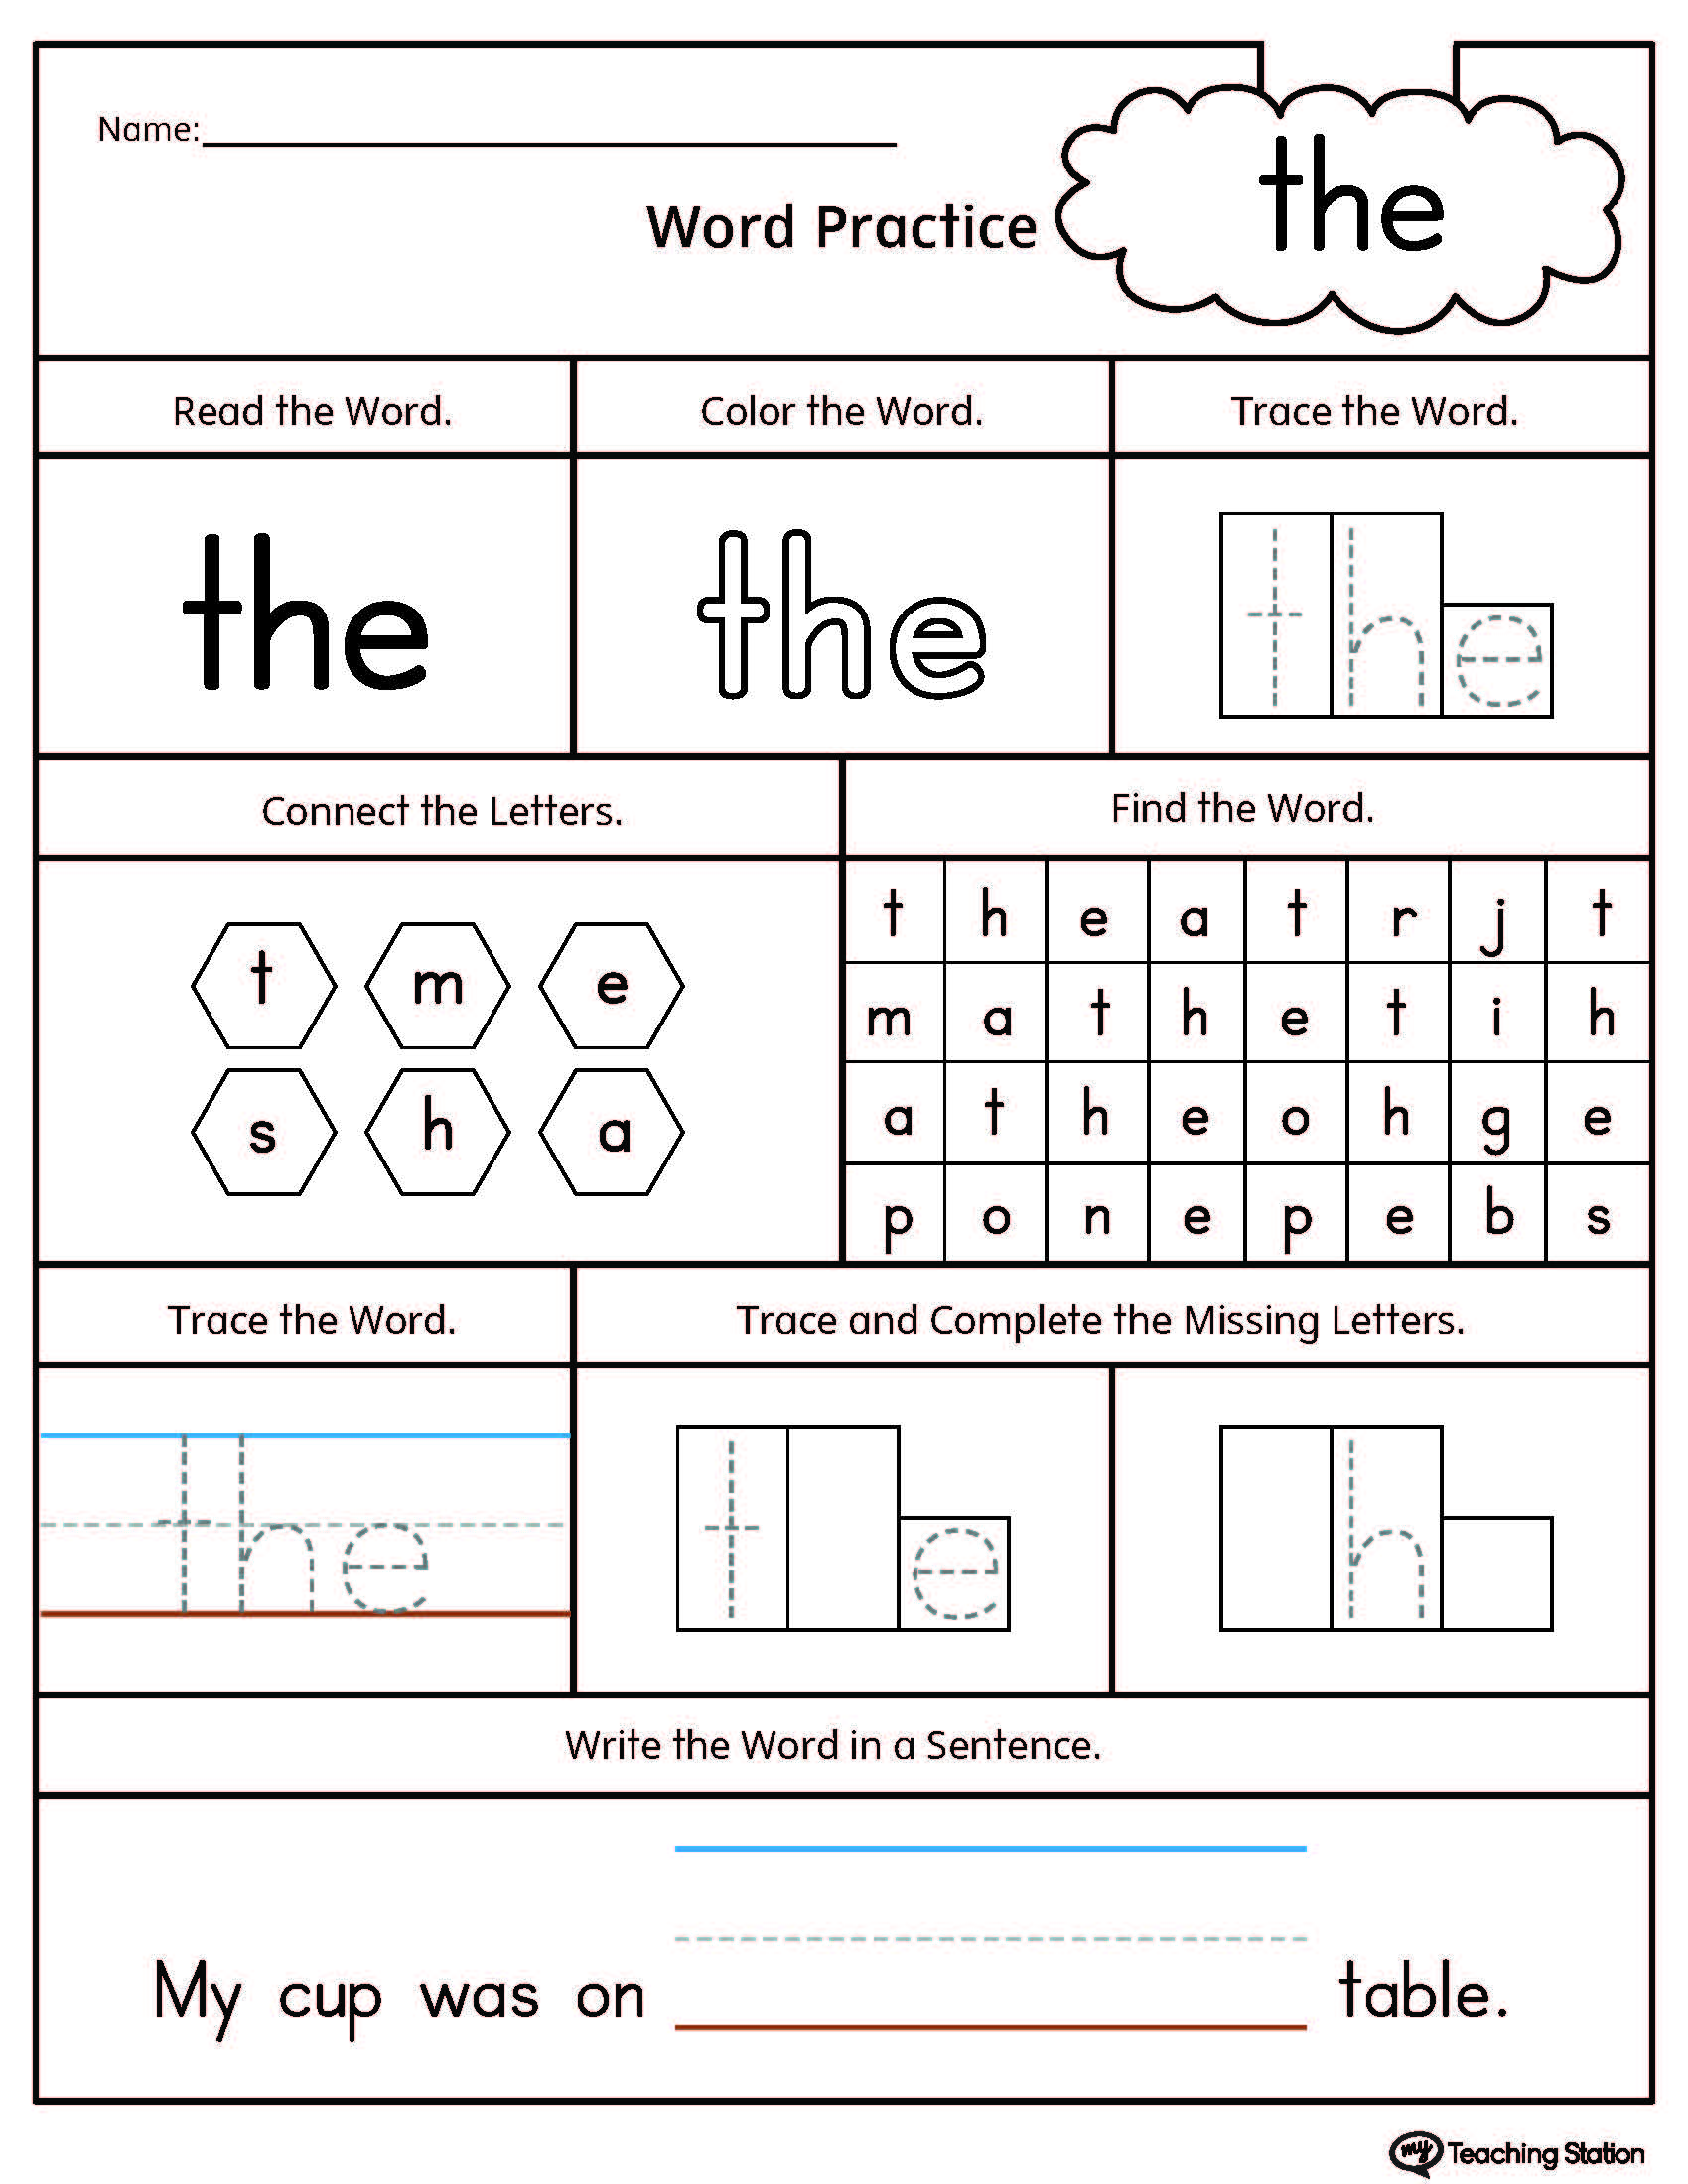 Early reading worksheets printable